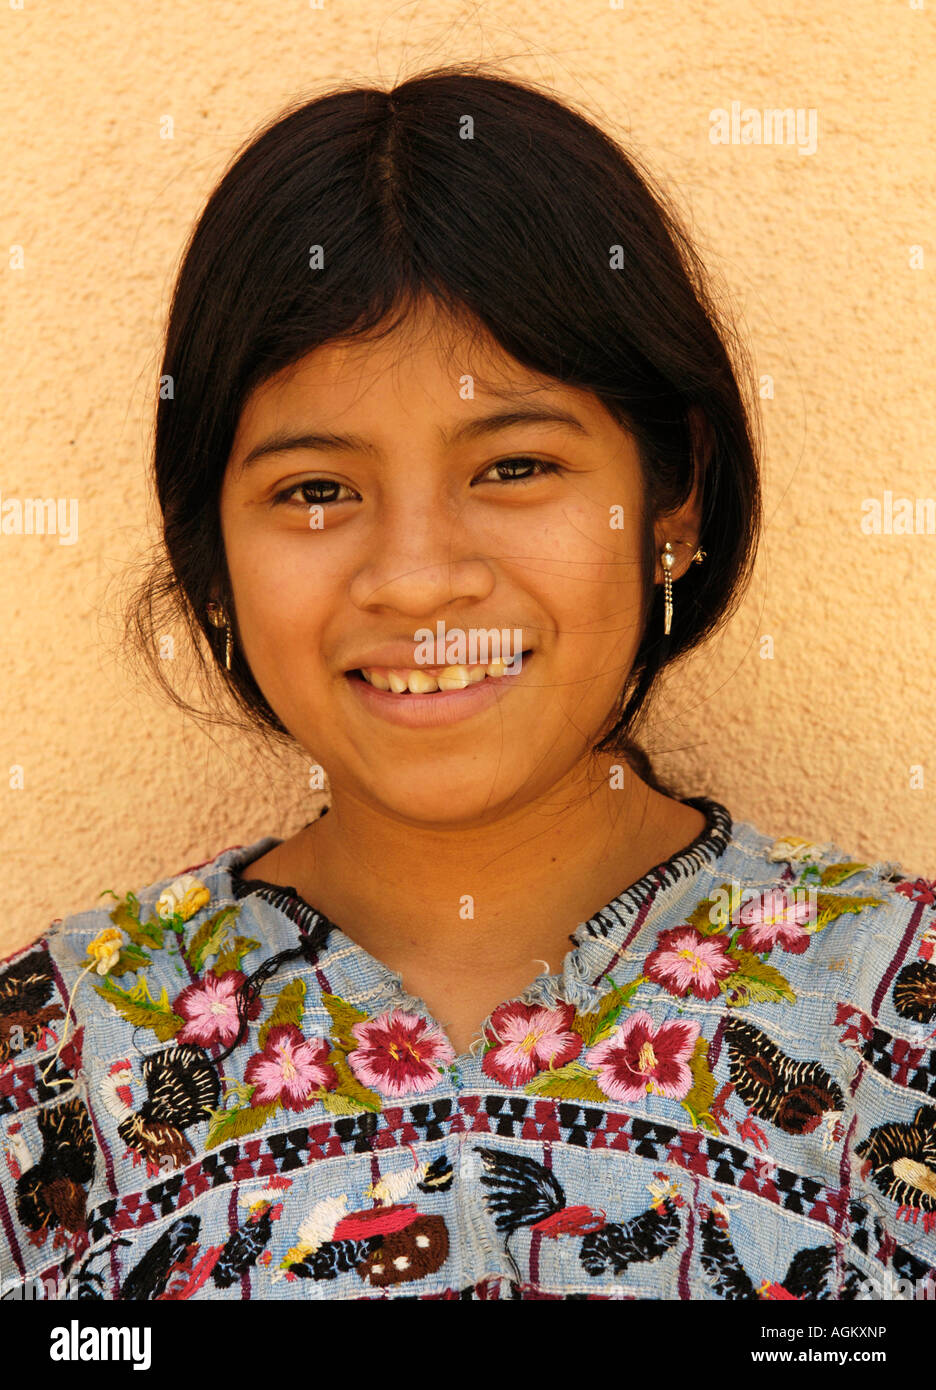 Guatemala, Santiago Atitlan, Portrait of smiling girl against yellow wall. - Stock Image